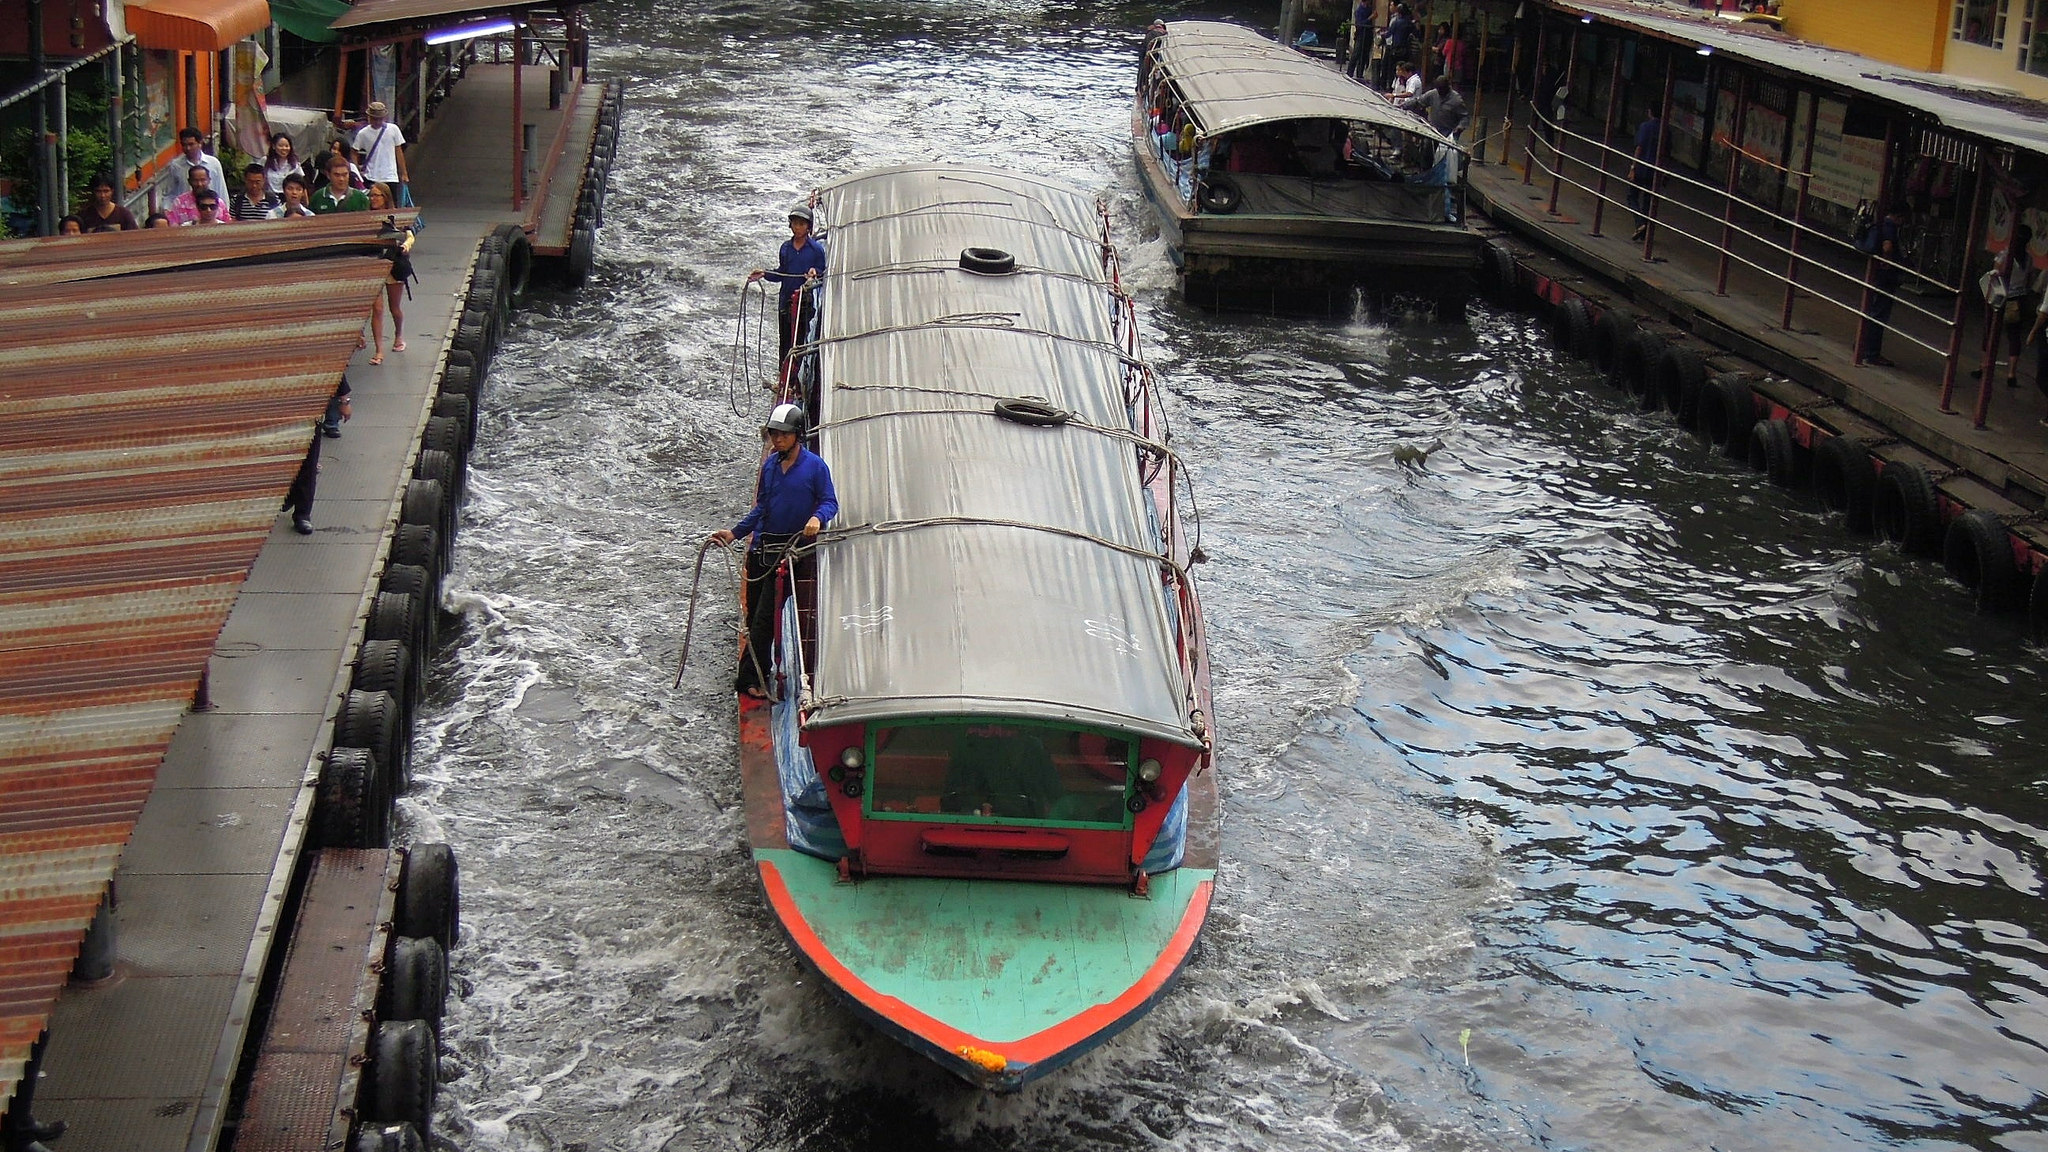 New Bangkok canal boat service to reinvigorate interest in the city's waterways